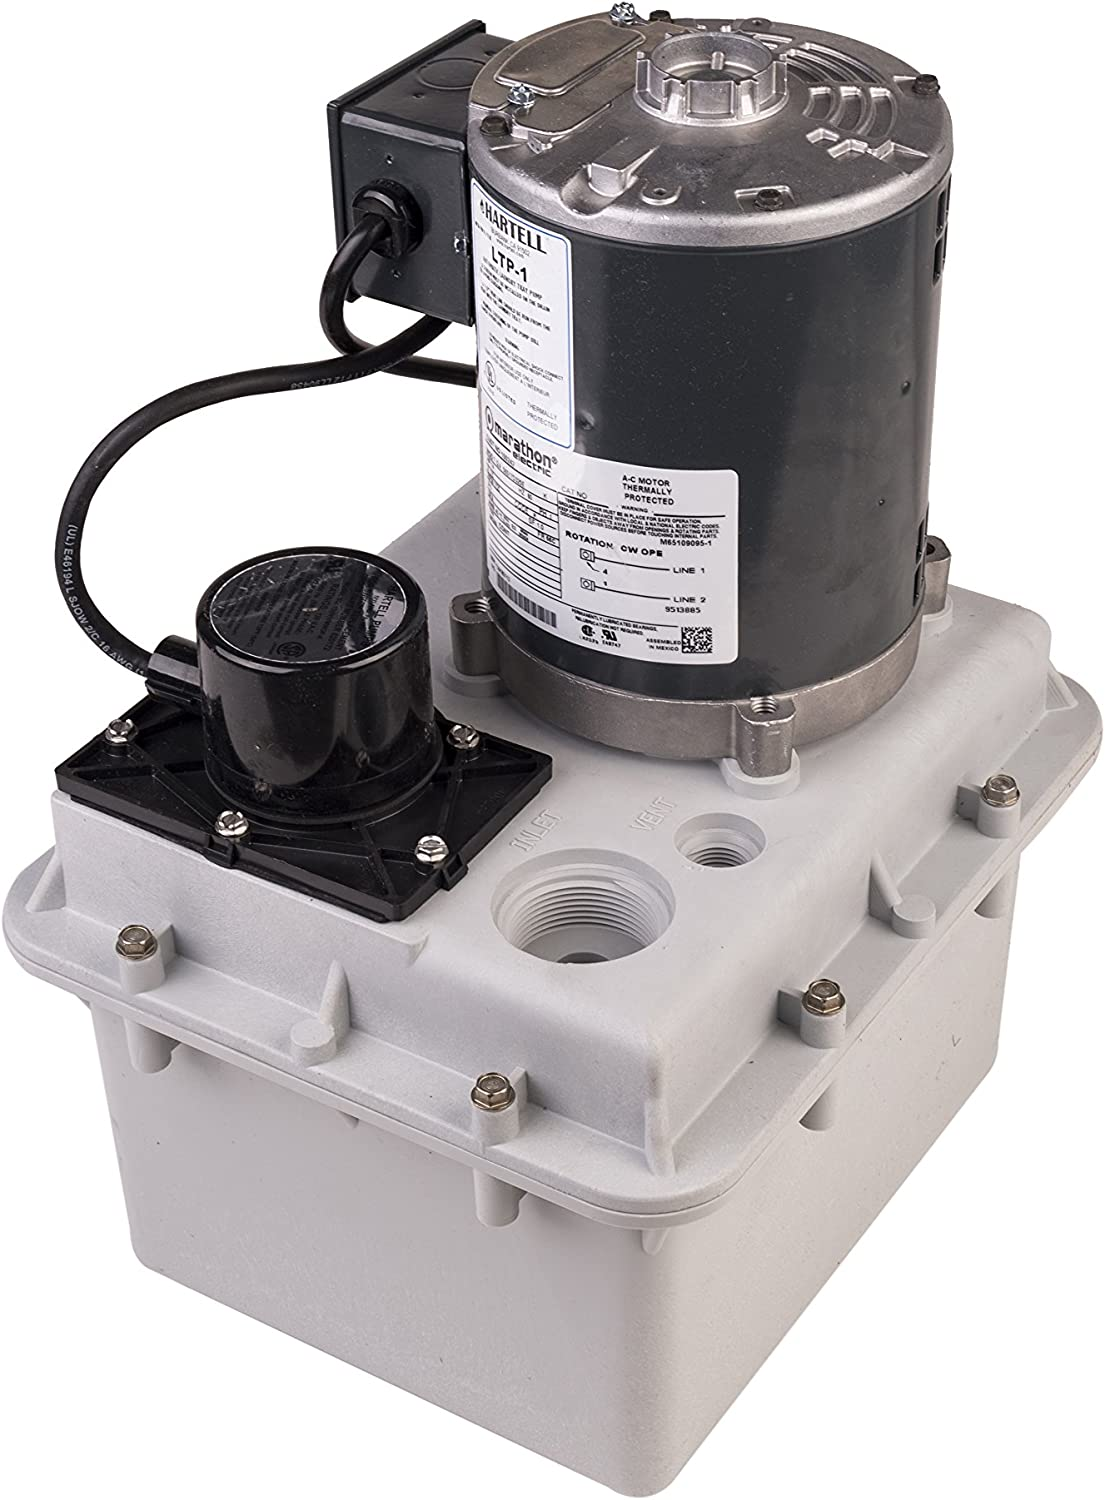 "LTP-1 Hartell Laundry Tray Pump, W/2 Gallon Reservoir, 115 Volt, 1/4 HP 1-1/2"" Inlet 1"" Outlet"